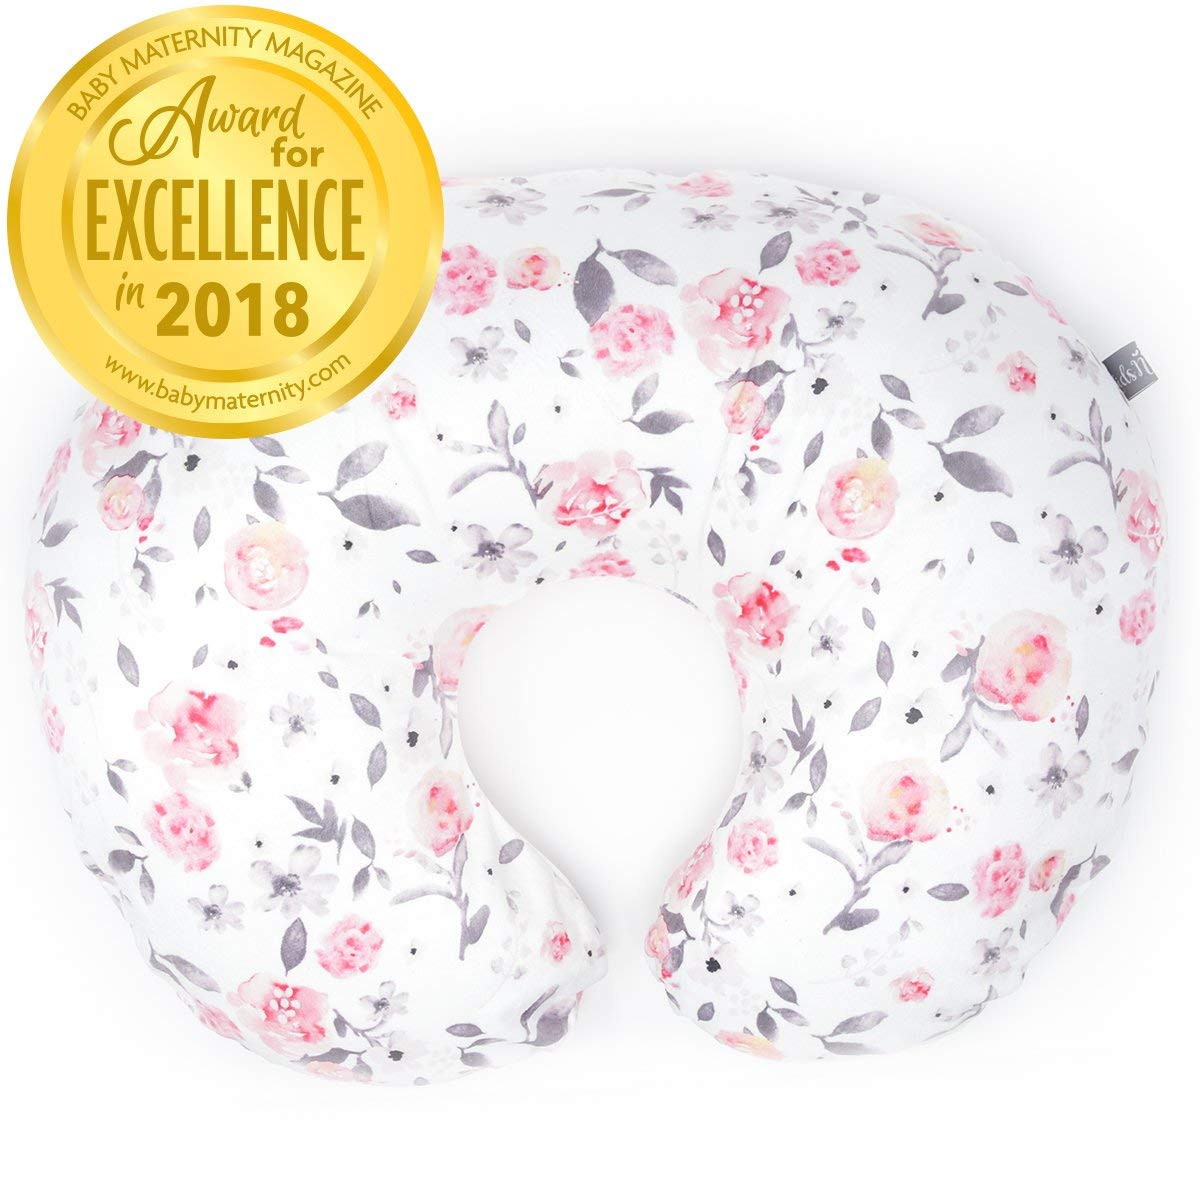 Minky Nursing Pillow Cover - Slipcover ONLY - Petal Slipcover - Best for Breastfeeding Moms - Soft Fabric Fits Snug On Infant Nursing Pillows to Aid Mothers While Breast Feeding by Kids N' Such